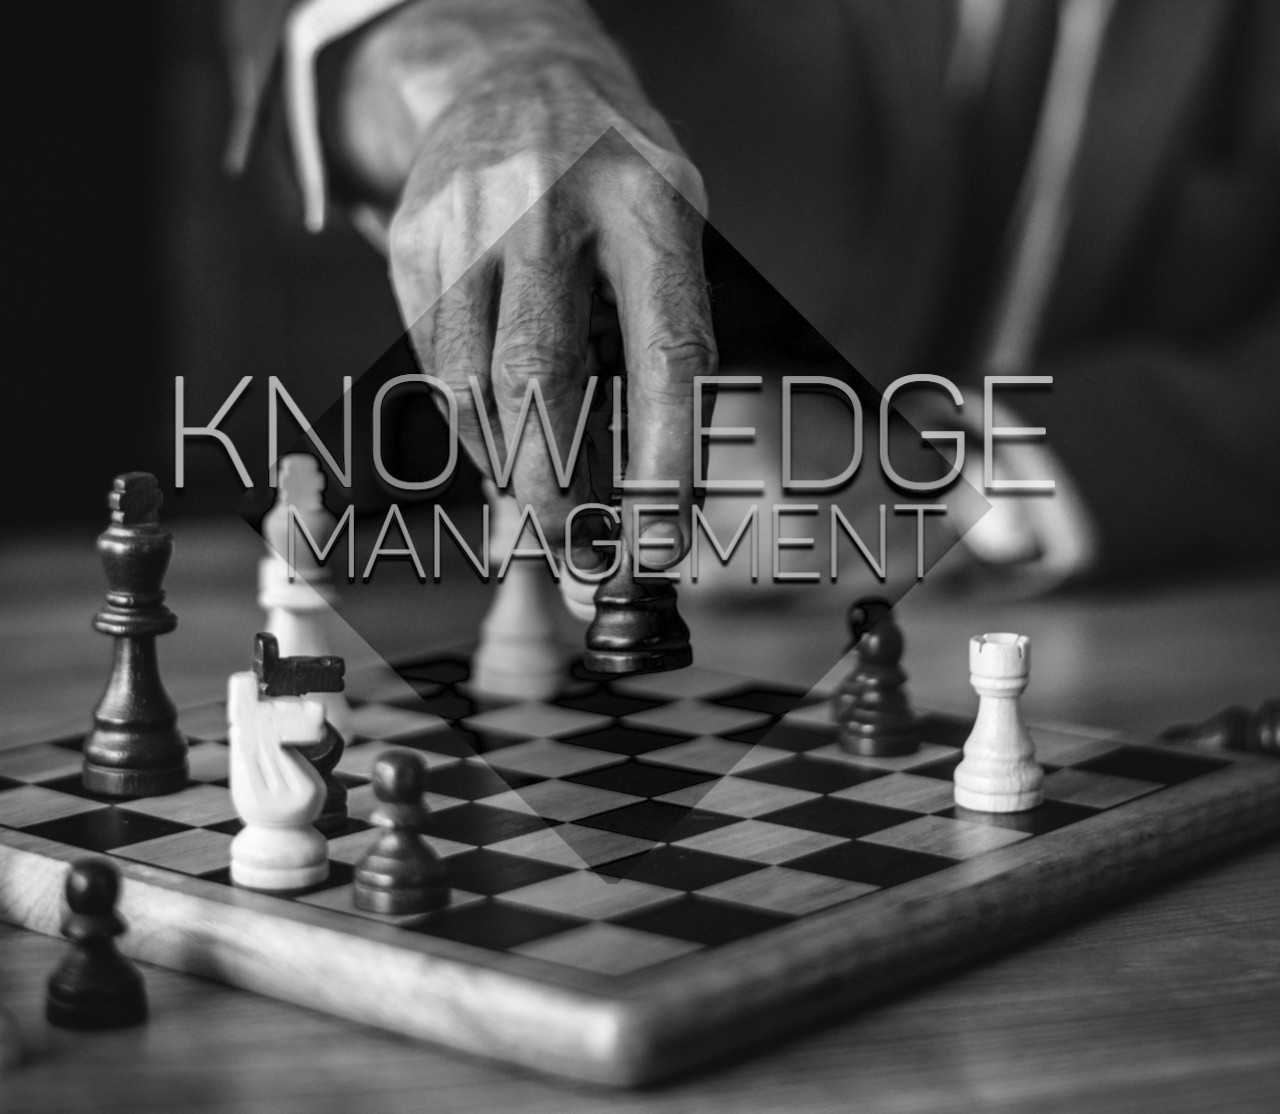 learn knowledge,3 theories of learning,difference between teaching and training,knowledge learning center,knowledge management strategy pdf,what is knowledge management,knowledge and learning management,knowledge management book pdf,learning resources